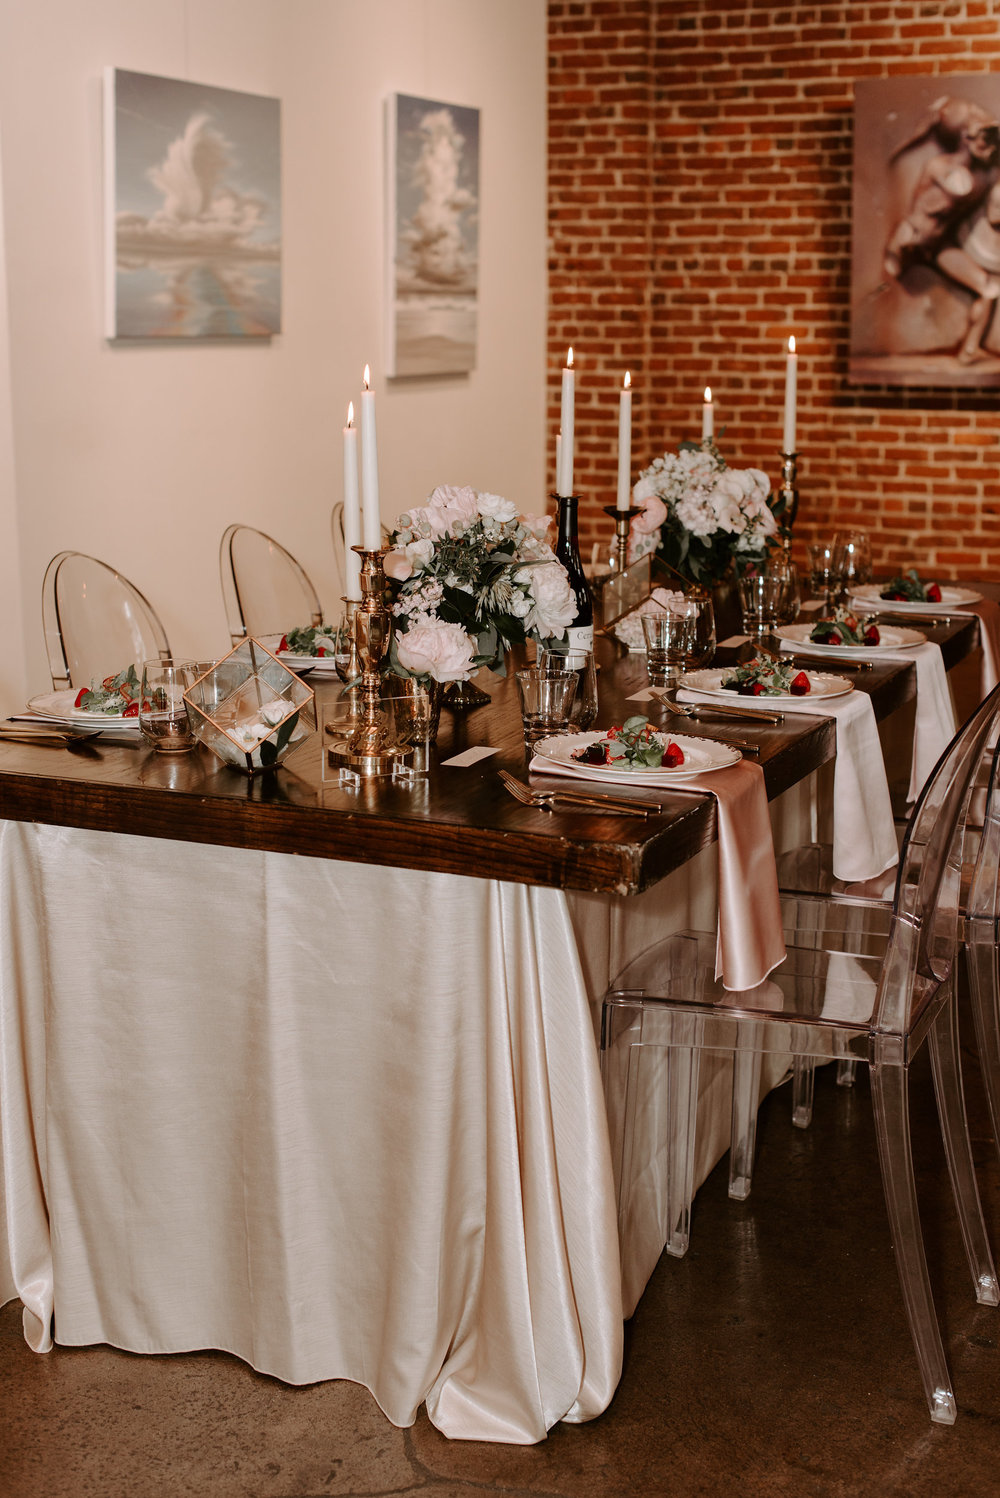 Copy of Copy of Wedding Table scape: Wedding details